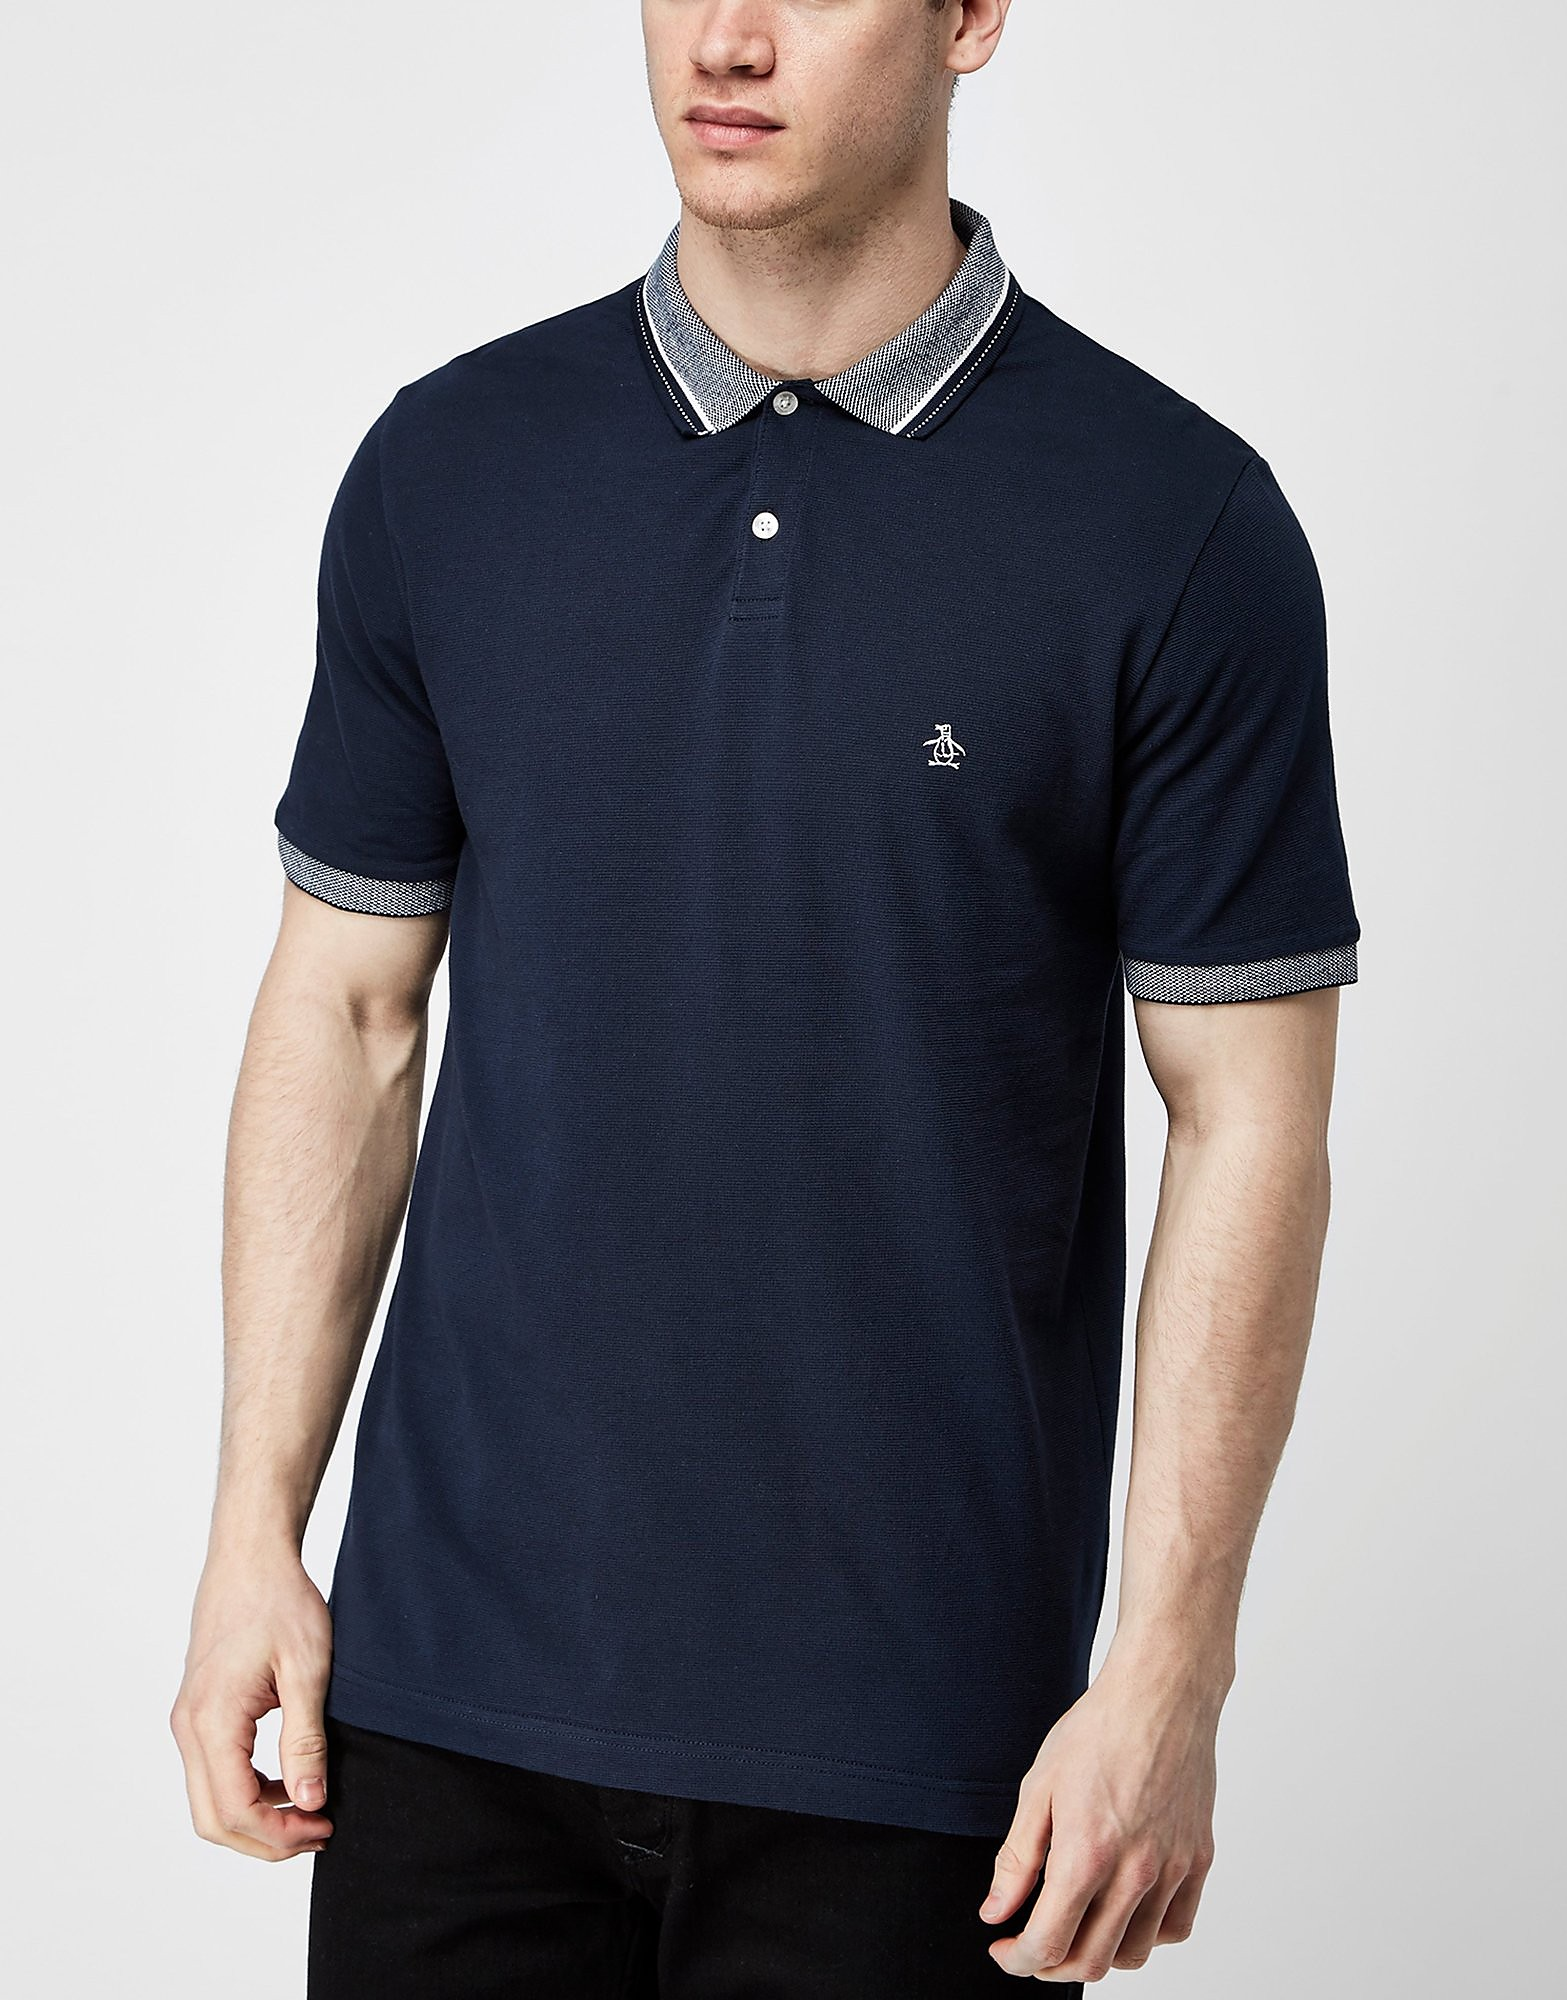 Original Penguin Stairway Pique Polo Shirt - Exclusive